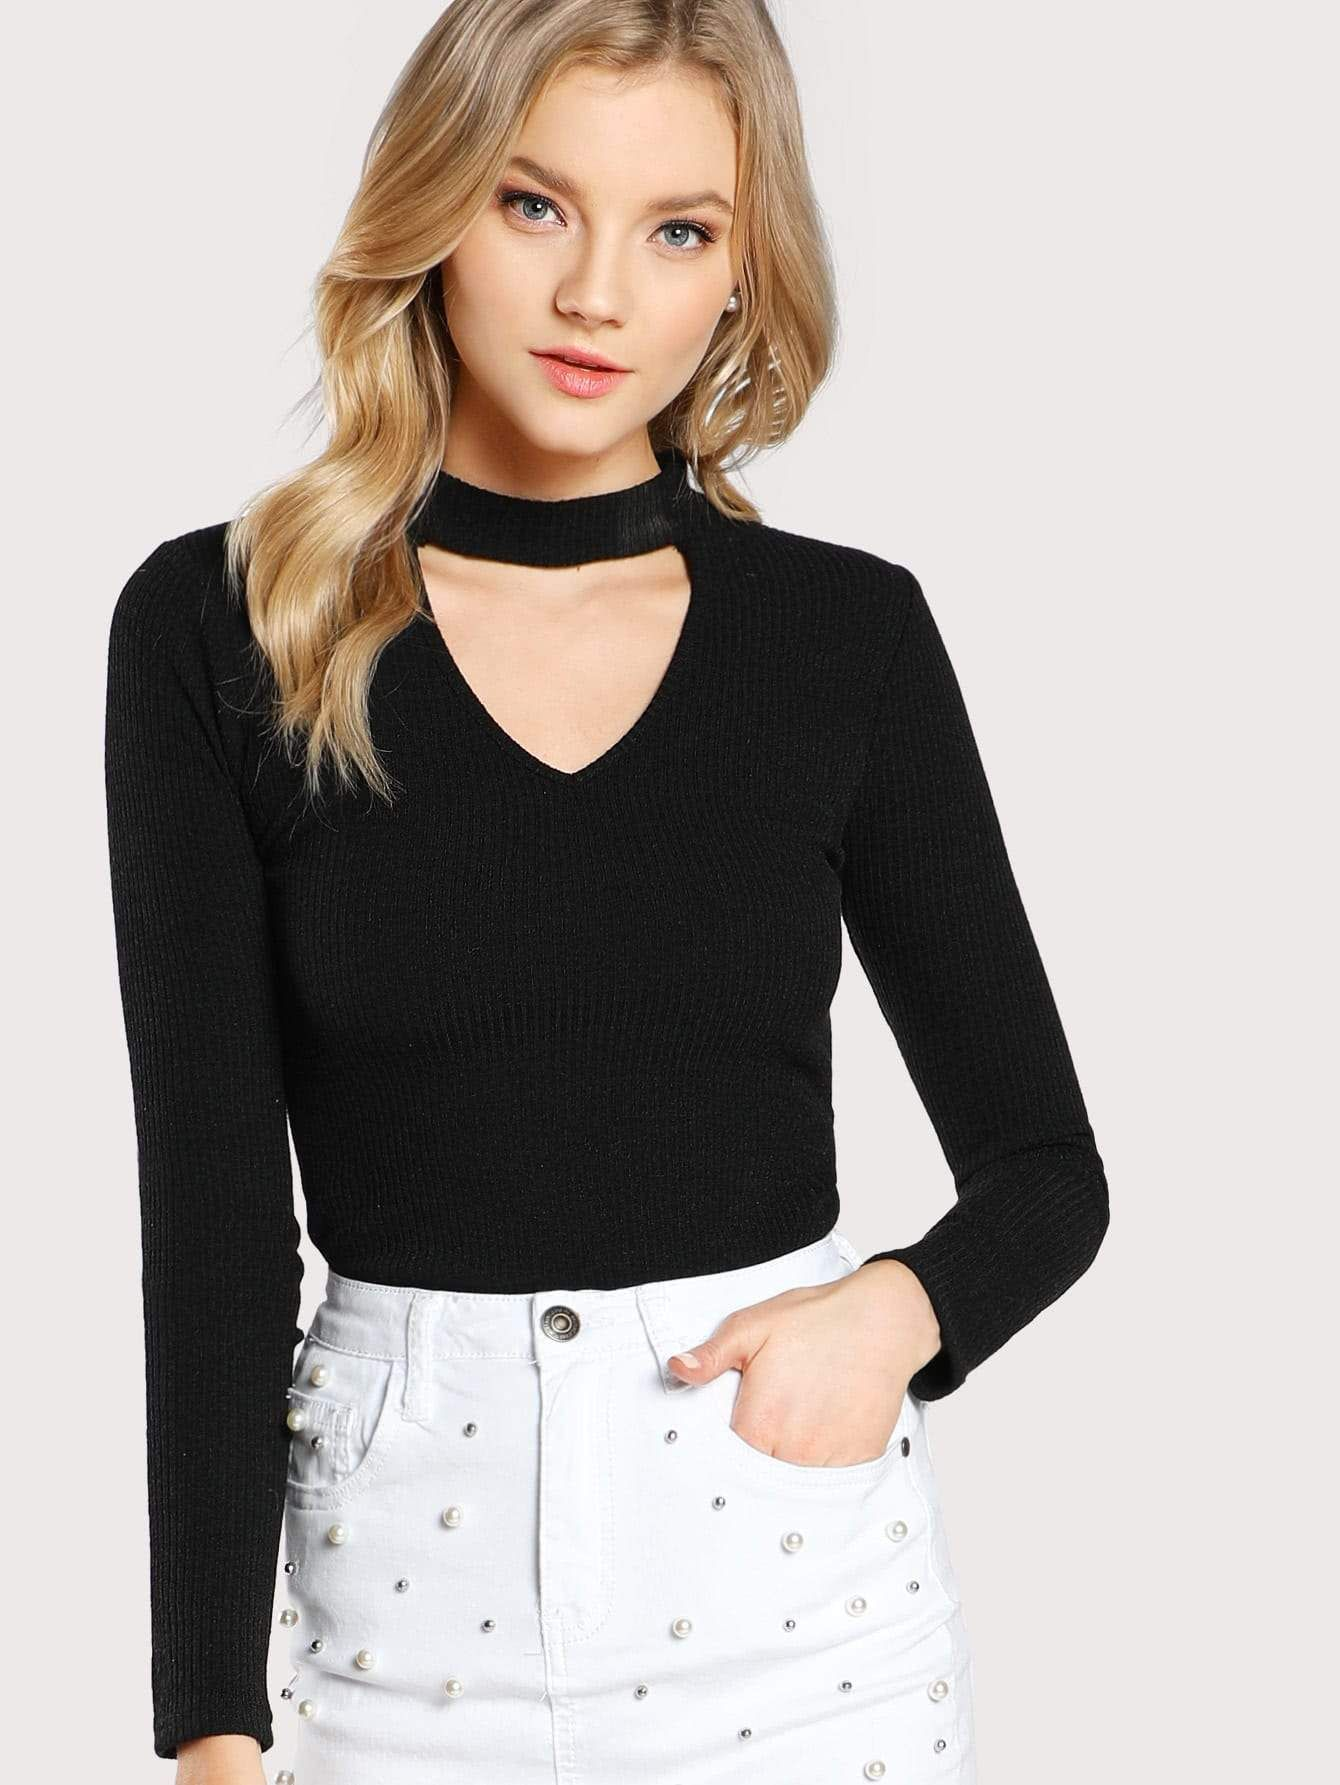 b9babb86c0 Choker Neck Rib Knit T-shirt | fashion in 2019 | Neck choker, Shirts ...